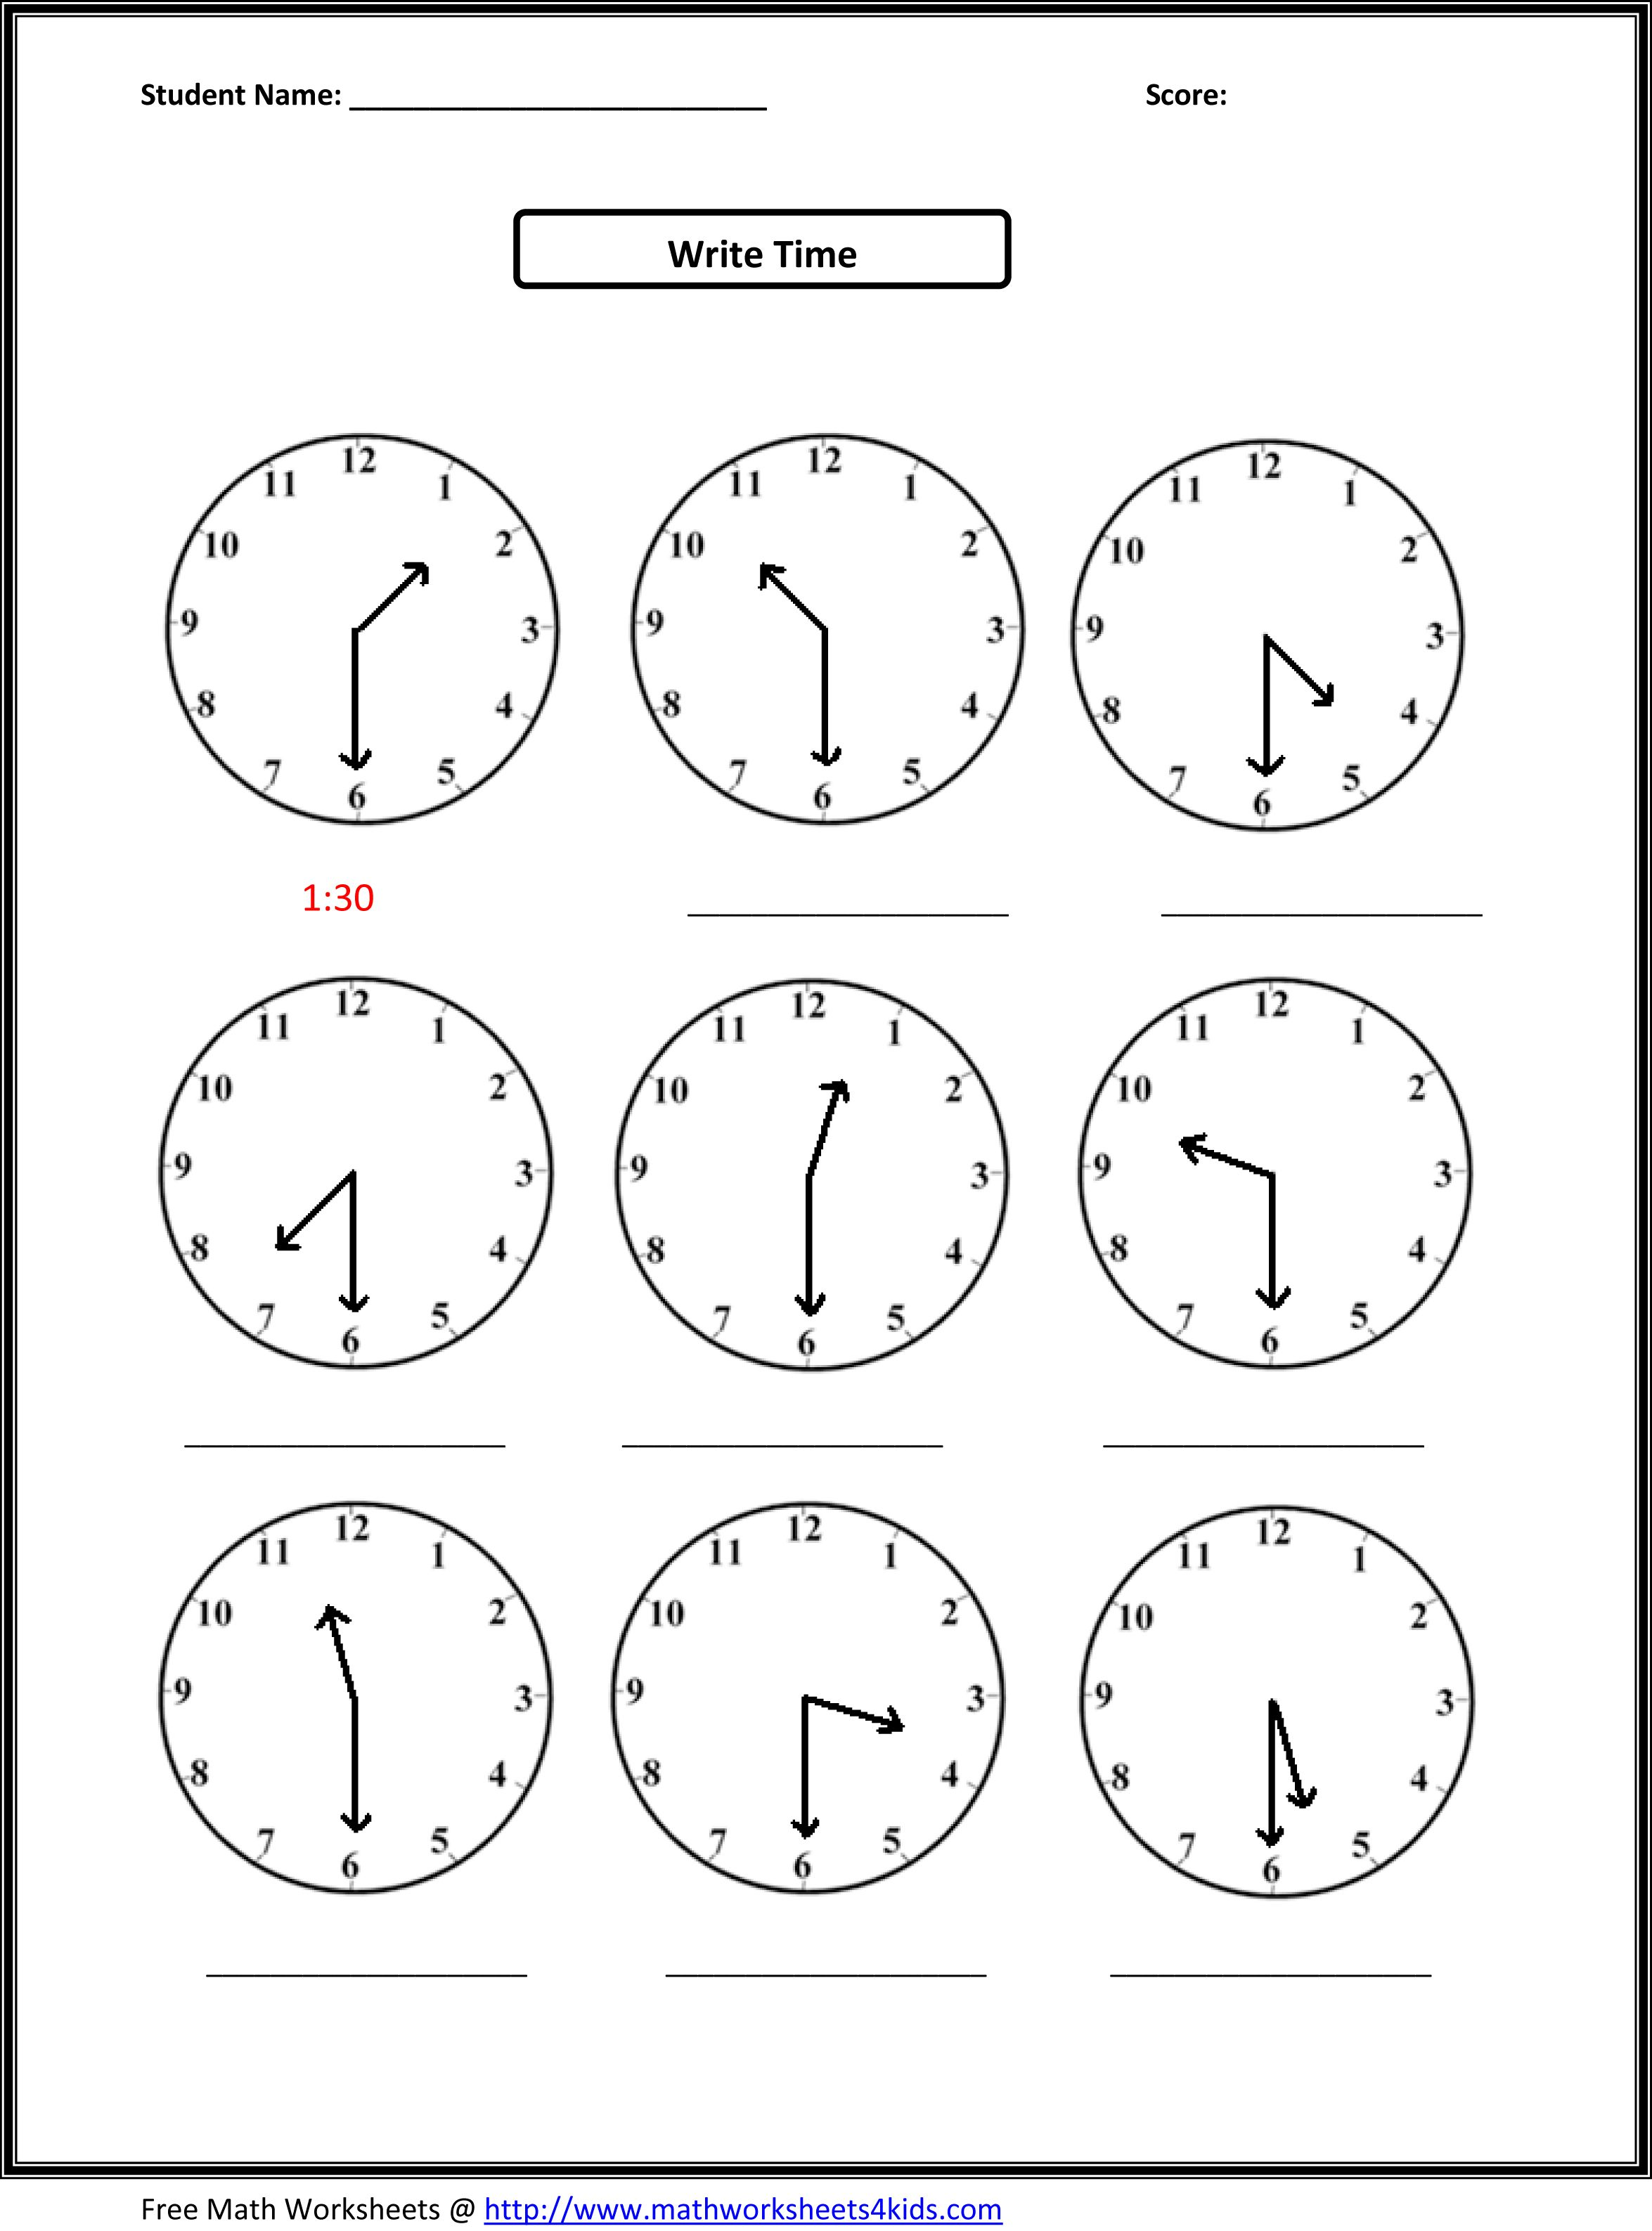 Proatmealus  Nice Worksheet On Time For Grade   Reocurent With Fetching Free Printable Telling Time Worksheets Nd Grade  Reocurent With Amusing Easy Elapsed Time Worksheets Also North South East West Worksheets In Addition Geography Worksheets Th Grade And Vocabulary Worksheets For Th Grade As Well As Th Grade Rounding Worksheets Additionally Algebraic Equations Word Problems Worksheet From Reocurentcom With Proatmealus  Fetching Worksheet On Time For Grade   Reocurent With Amusing Free Printable Telling Time Worksheets Nd Grade  Reocurent And Nice Easy Elapsed Time Worksheets Also North South East West Worksheets In Addition Geography Worksheets Th Grade From Reocurentcom